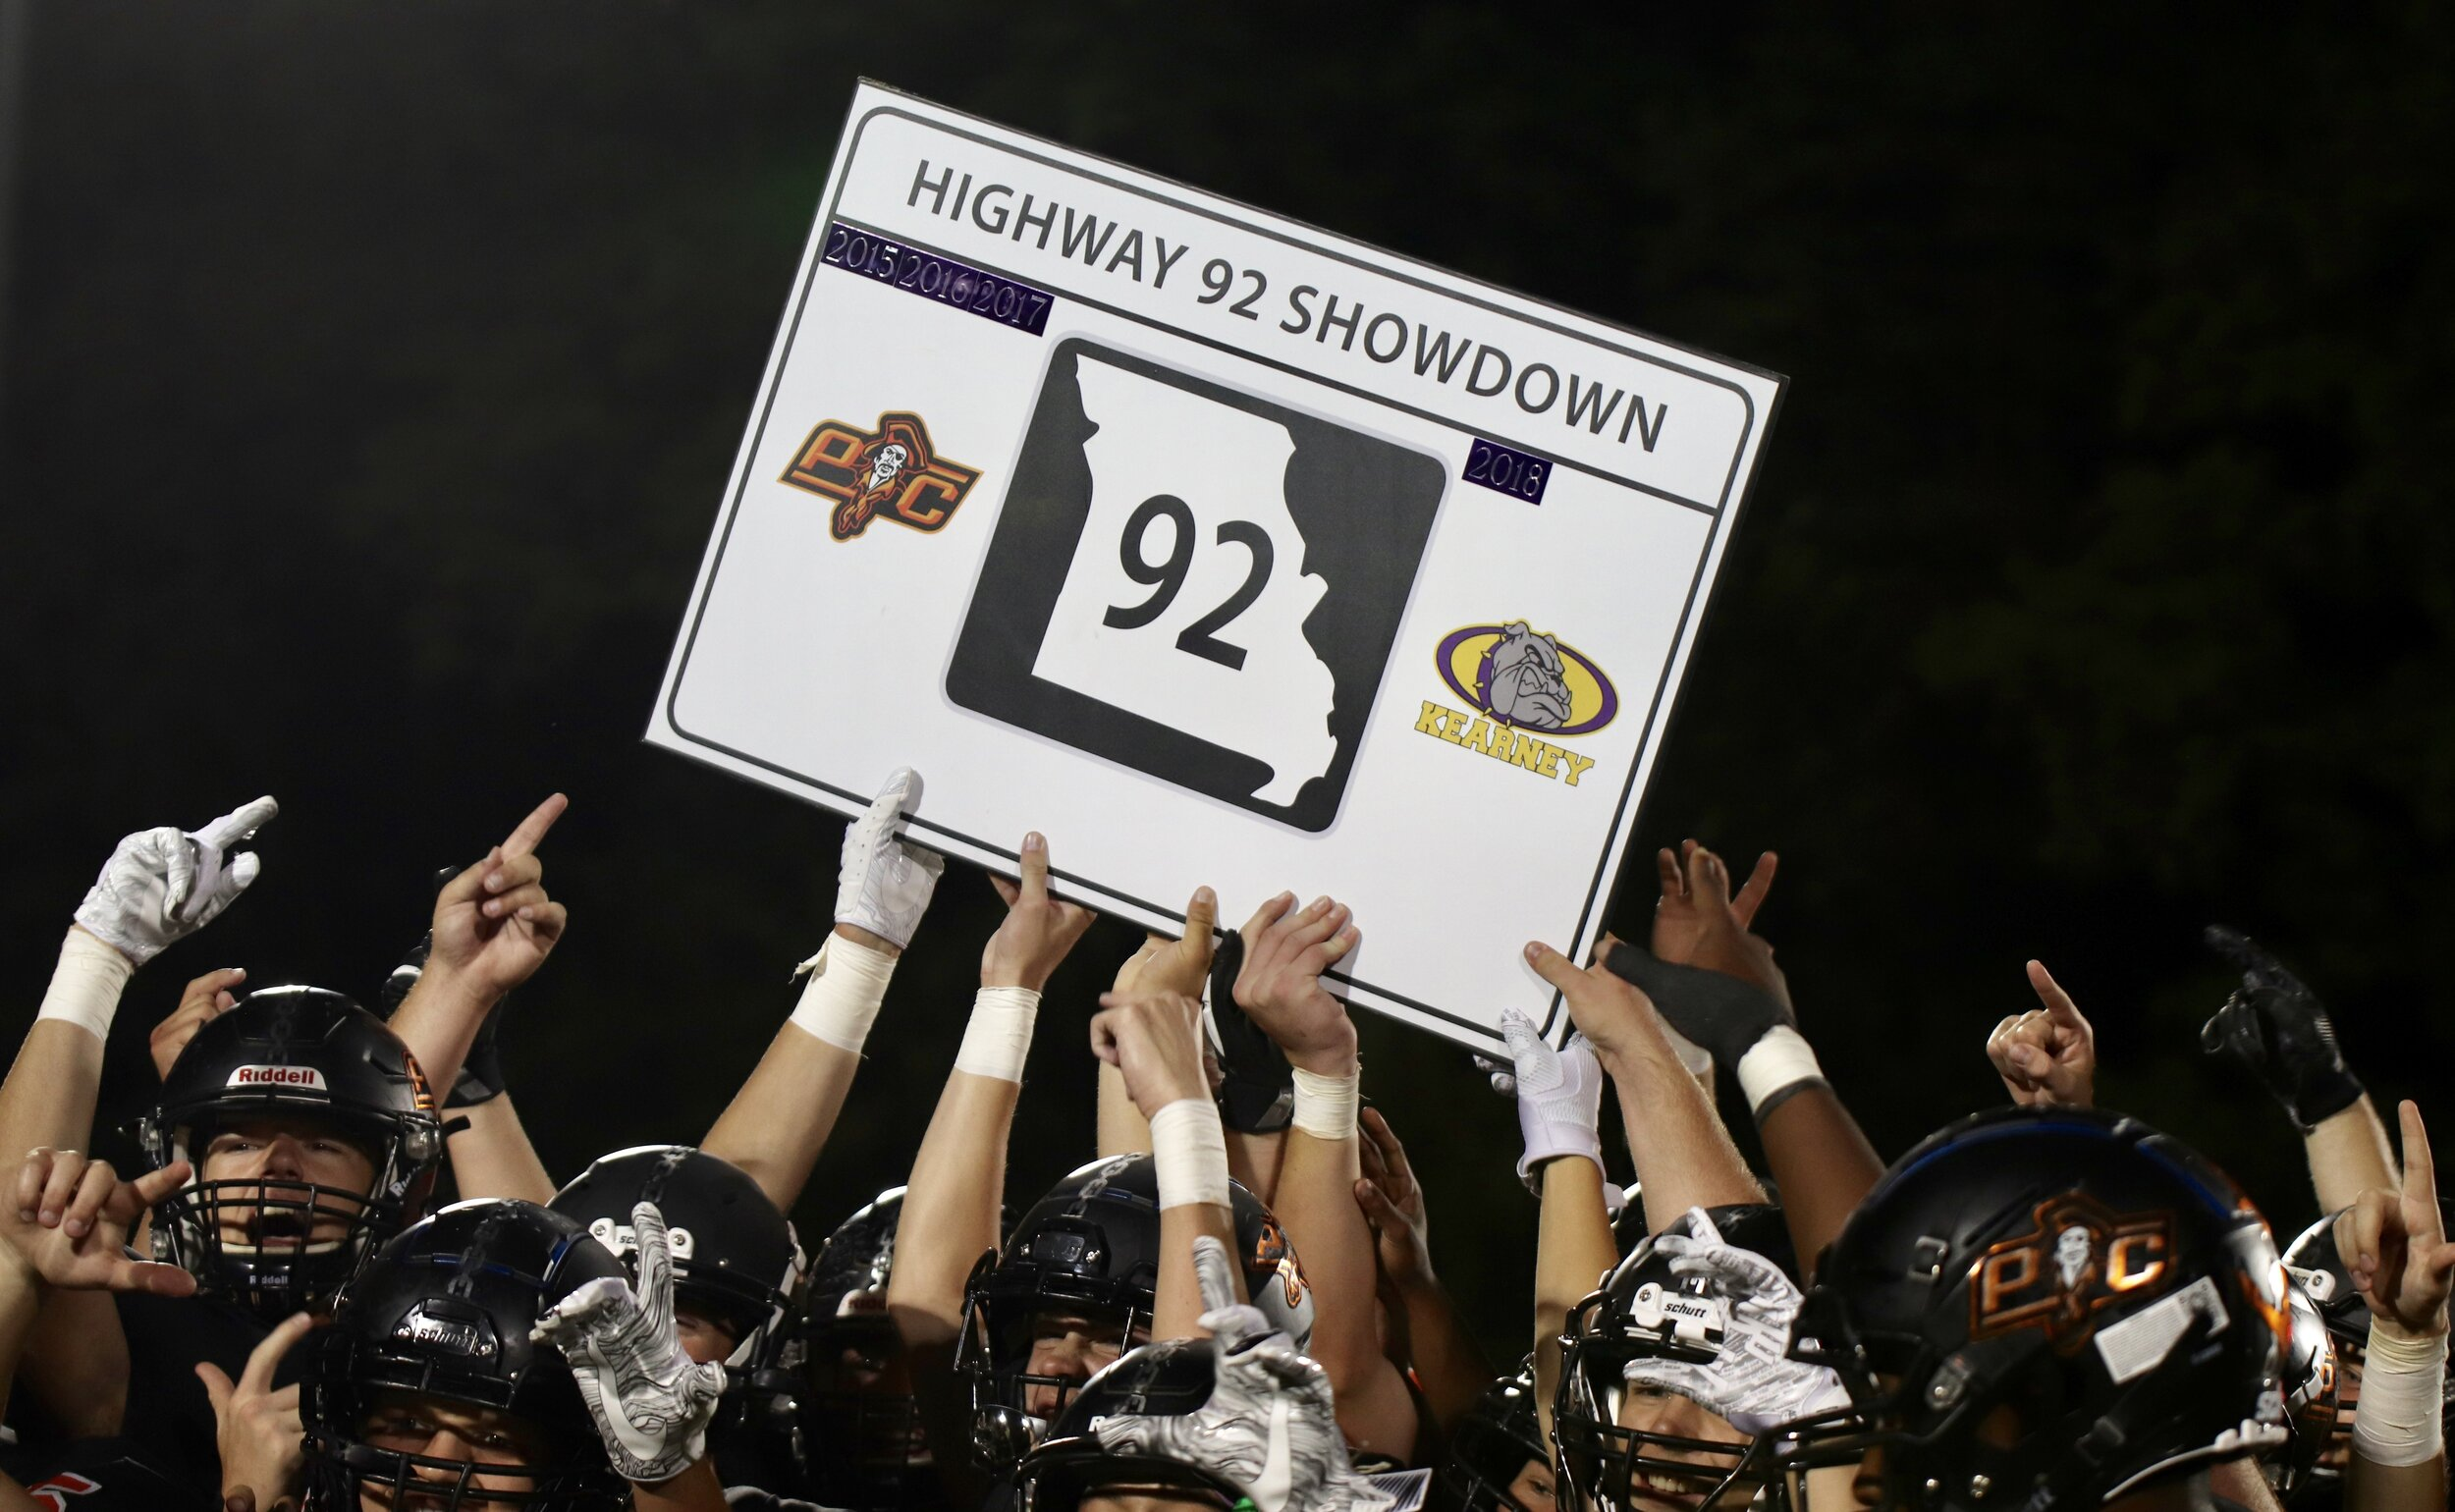 ROSS MARTIN/Special to the Citizen  Platte County players celebrate after getting their hands on the Highway 92 Showdown road sign traveling trophy after a 51-14 victory on Friday, Sept. 13 at Pirate Stadium in Platte City.